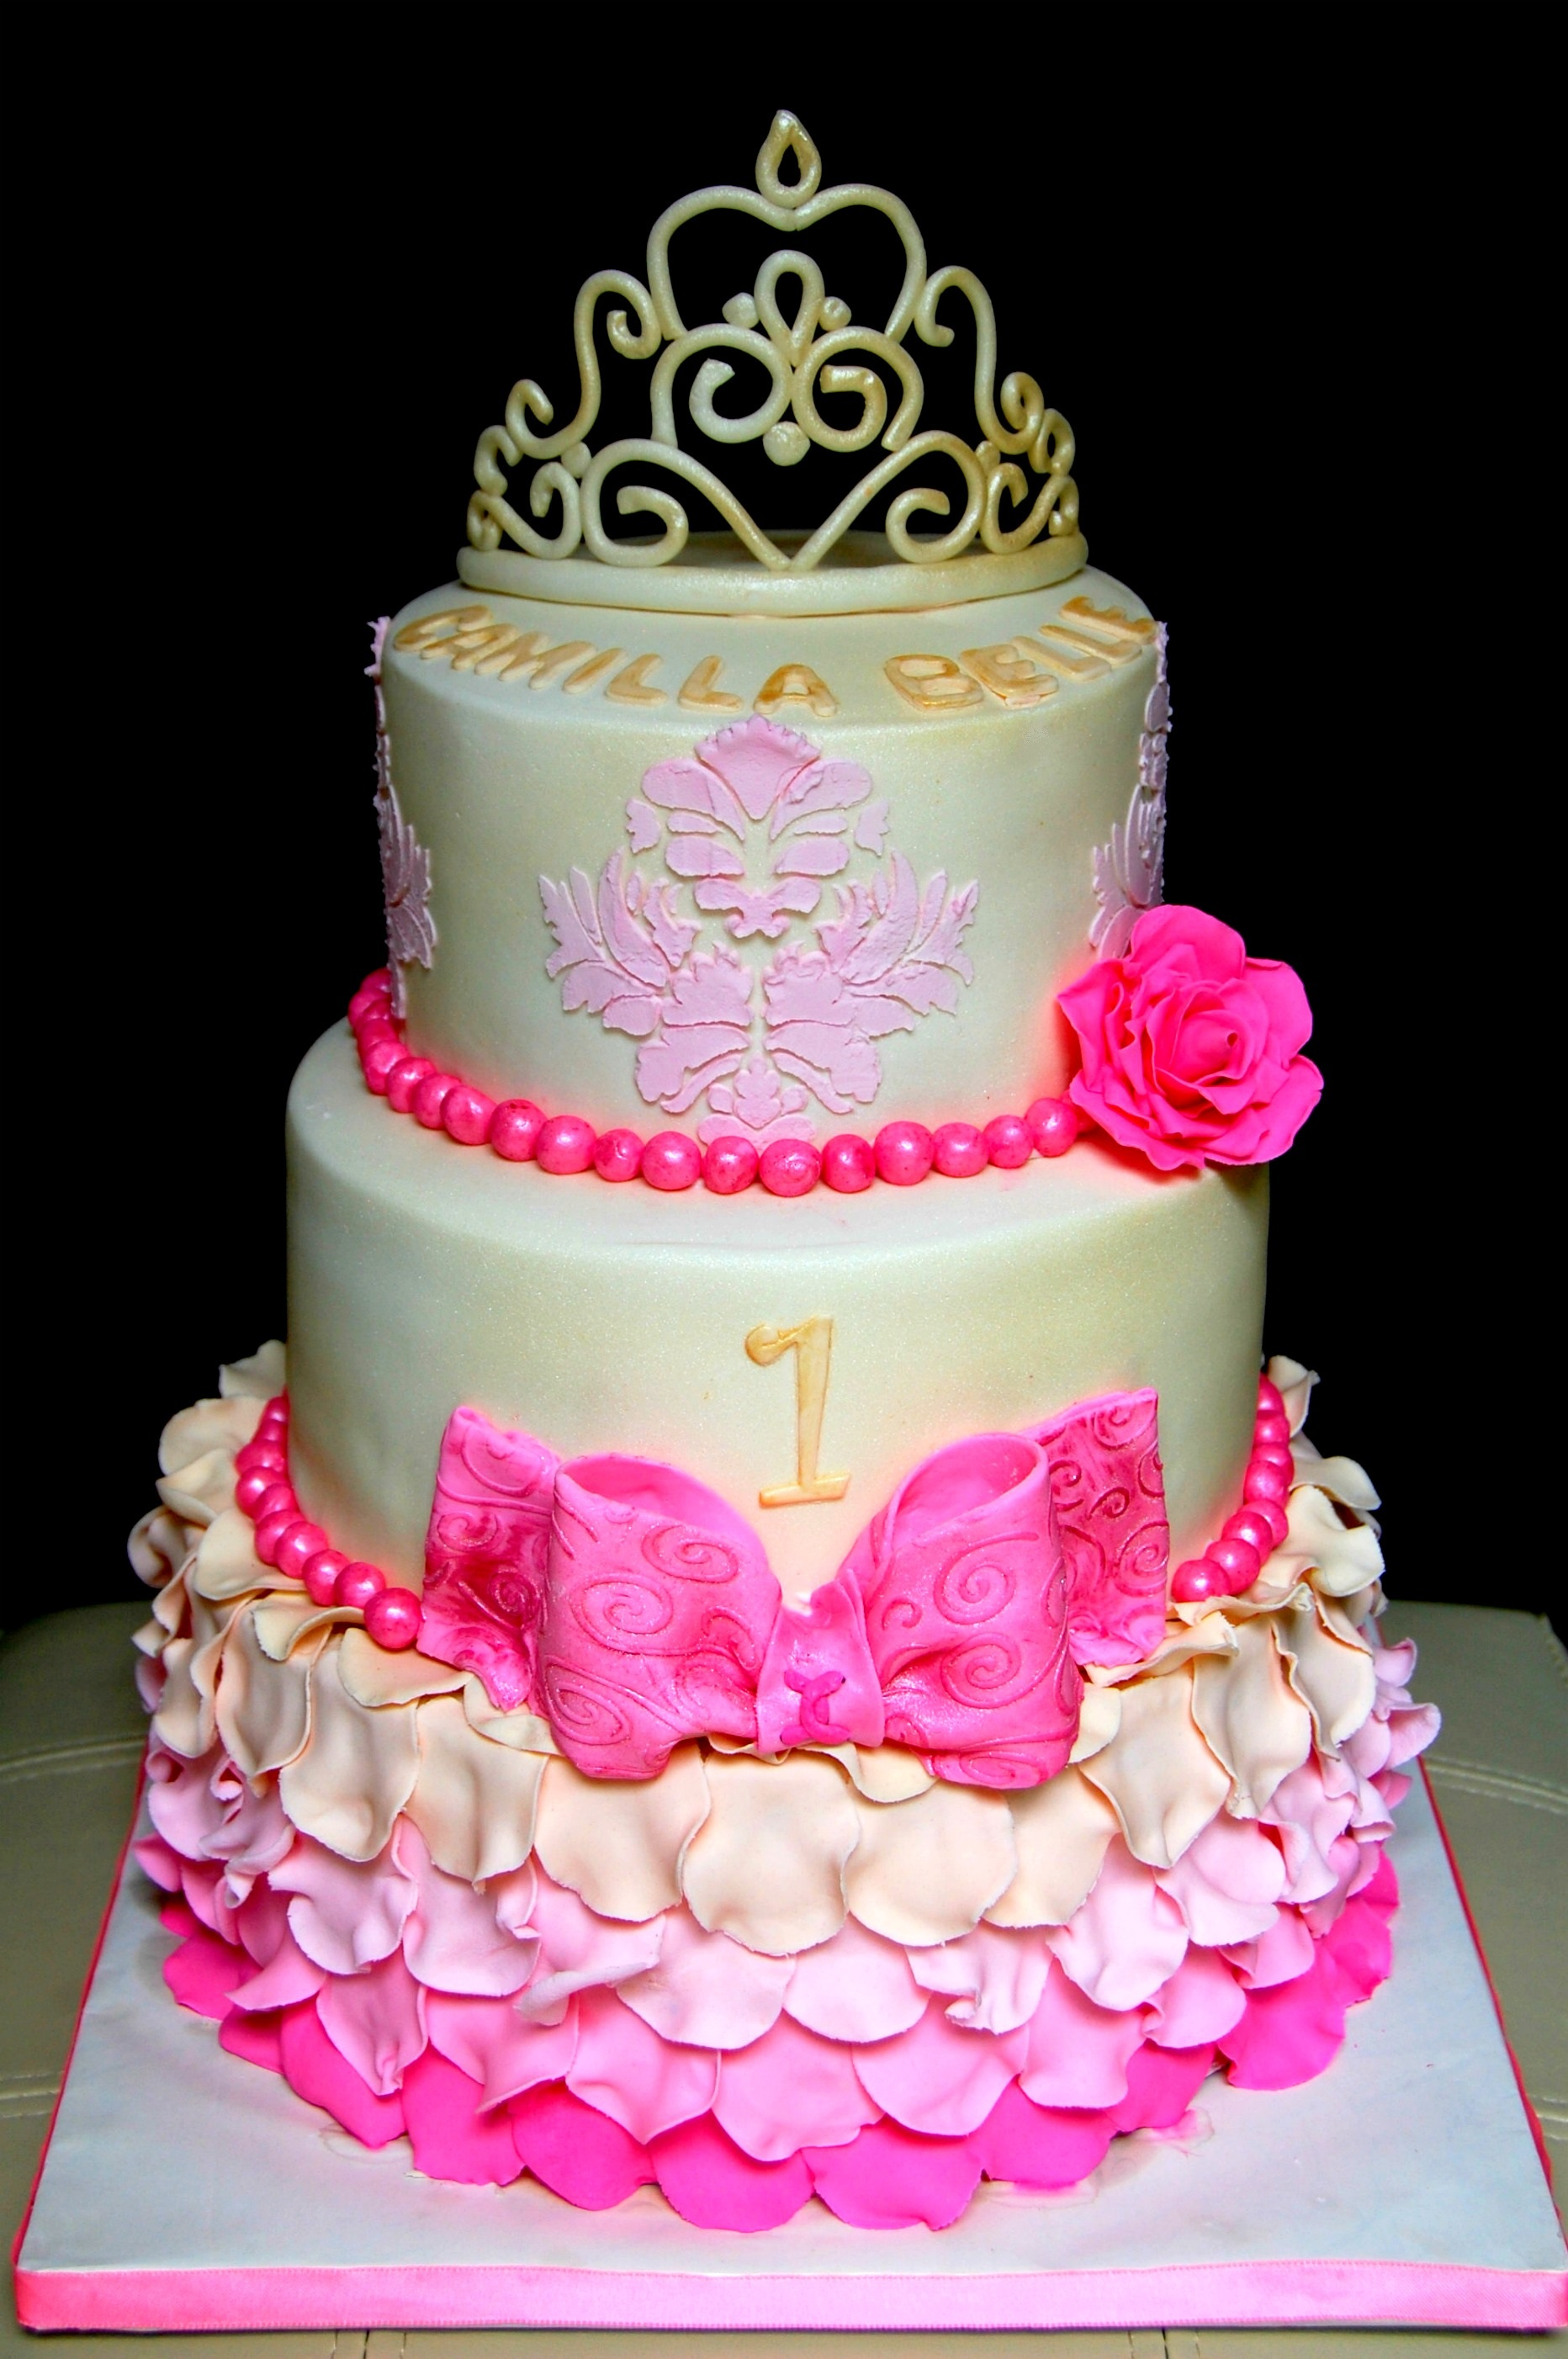 Cake for a sweet client who specifically wanted roses, tiara, damask